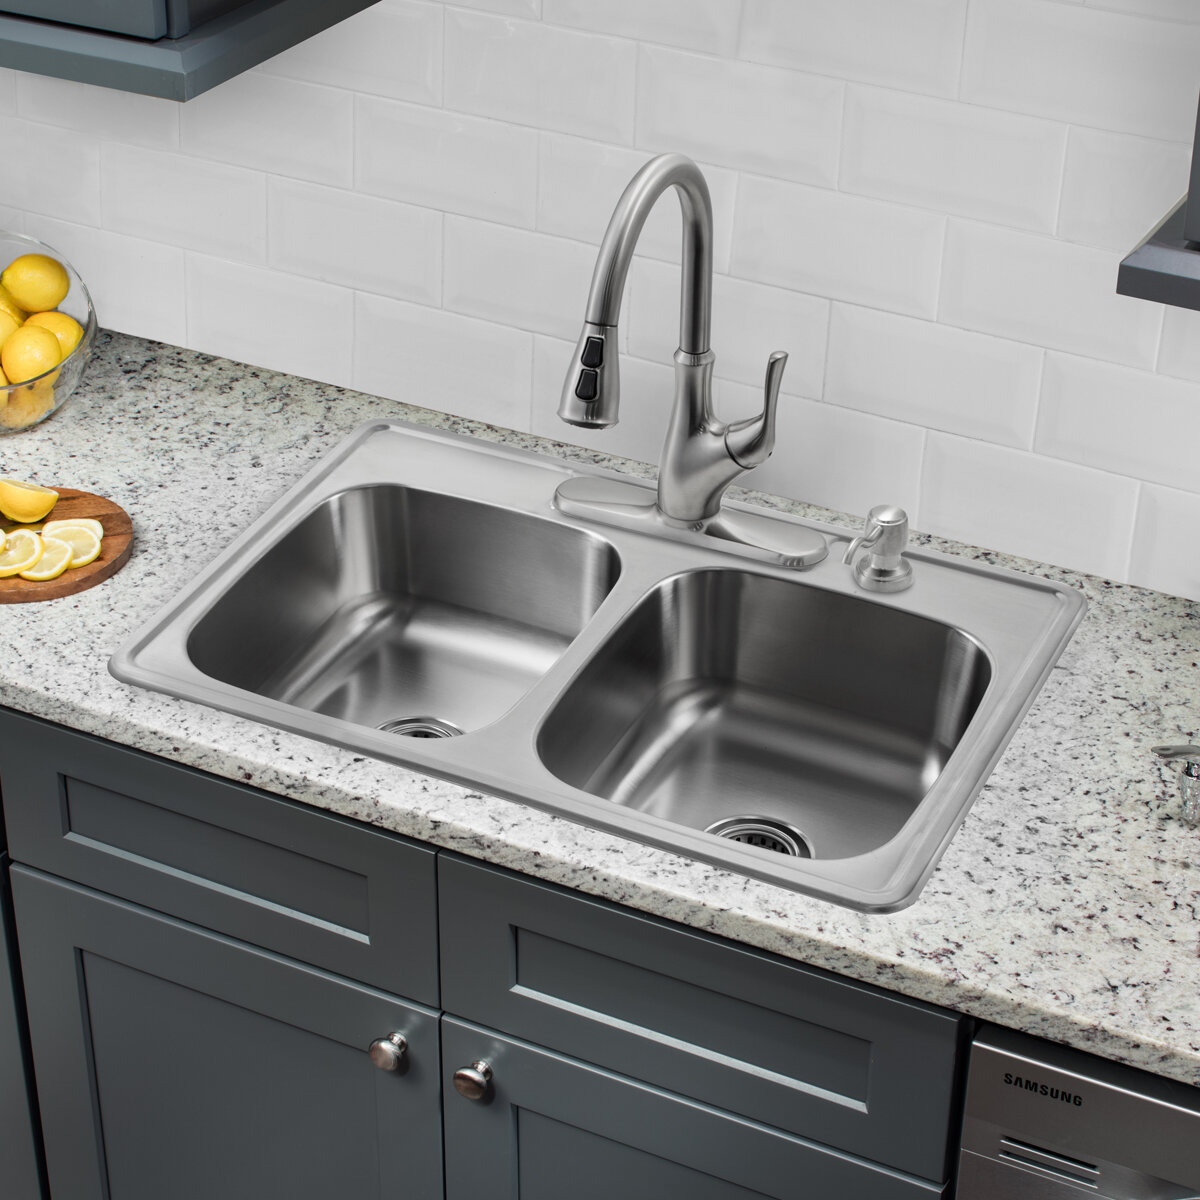 soleil 33 x 22 double bowl drop in stainless steel kitchen sink with faucet ebay. Black Bedroom Furniture Sets. Home Design Ideas